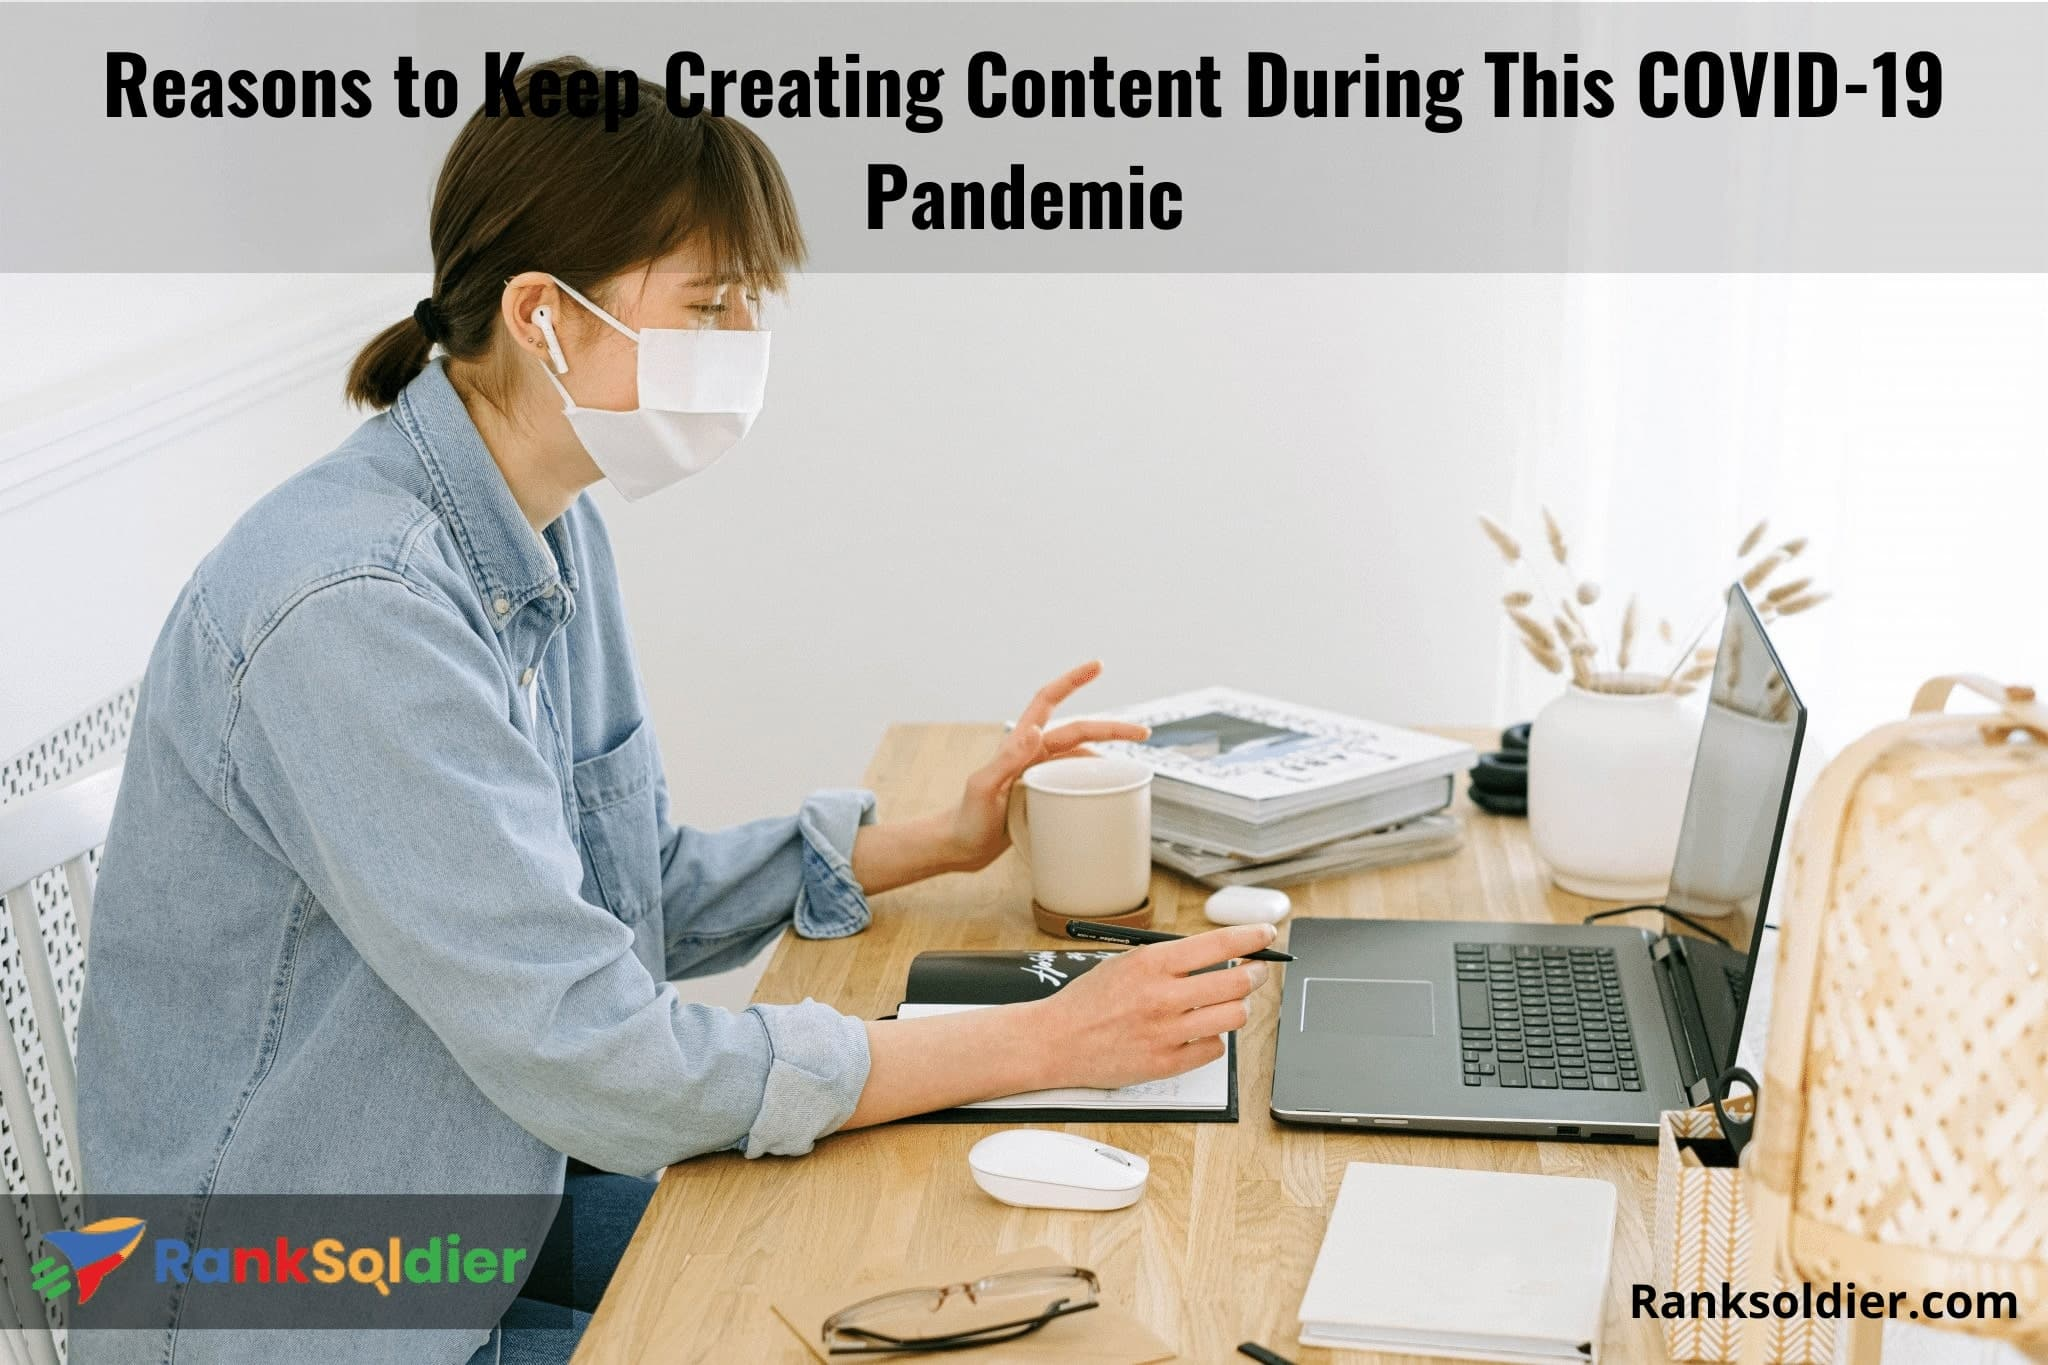 Reasons to Keep Creating Content During This COVID-19 Pandemic